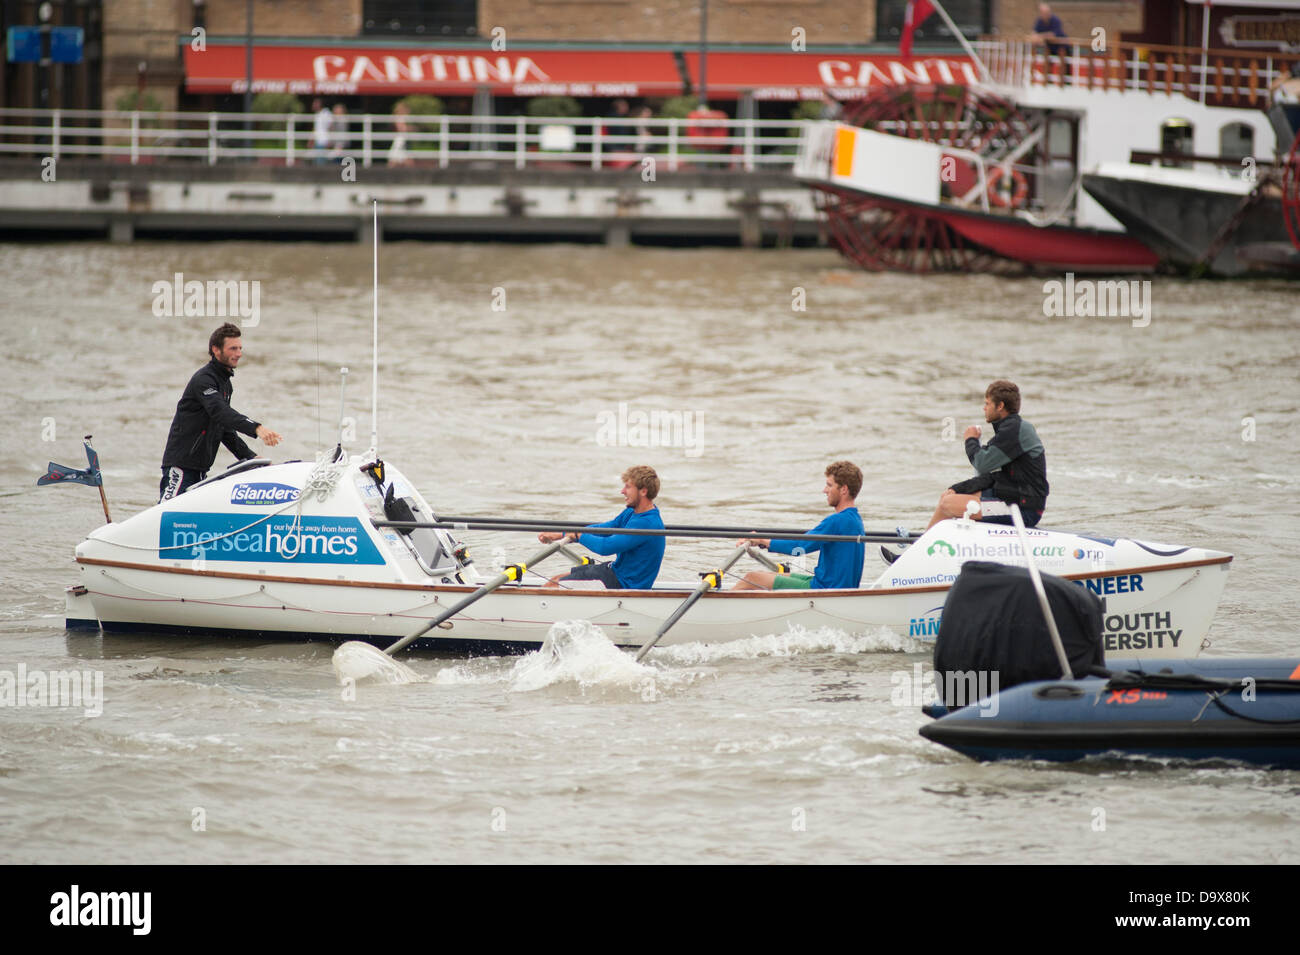 London, UK. 27th June 2013. The 4 man Islanders team shatter the round Britain GB Row and take first prize of £100,000.00 Stock Photo